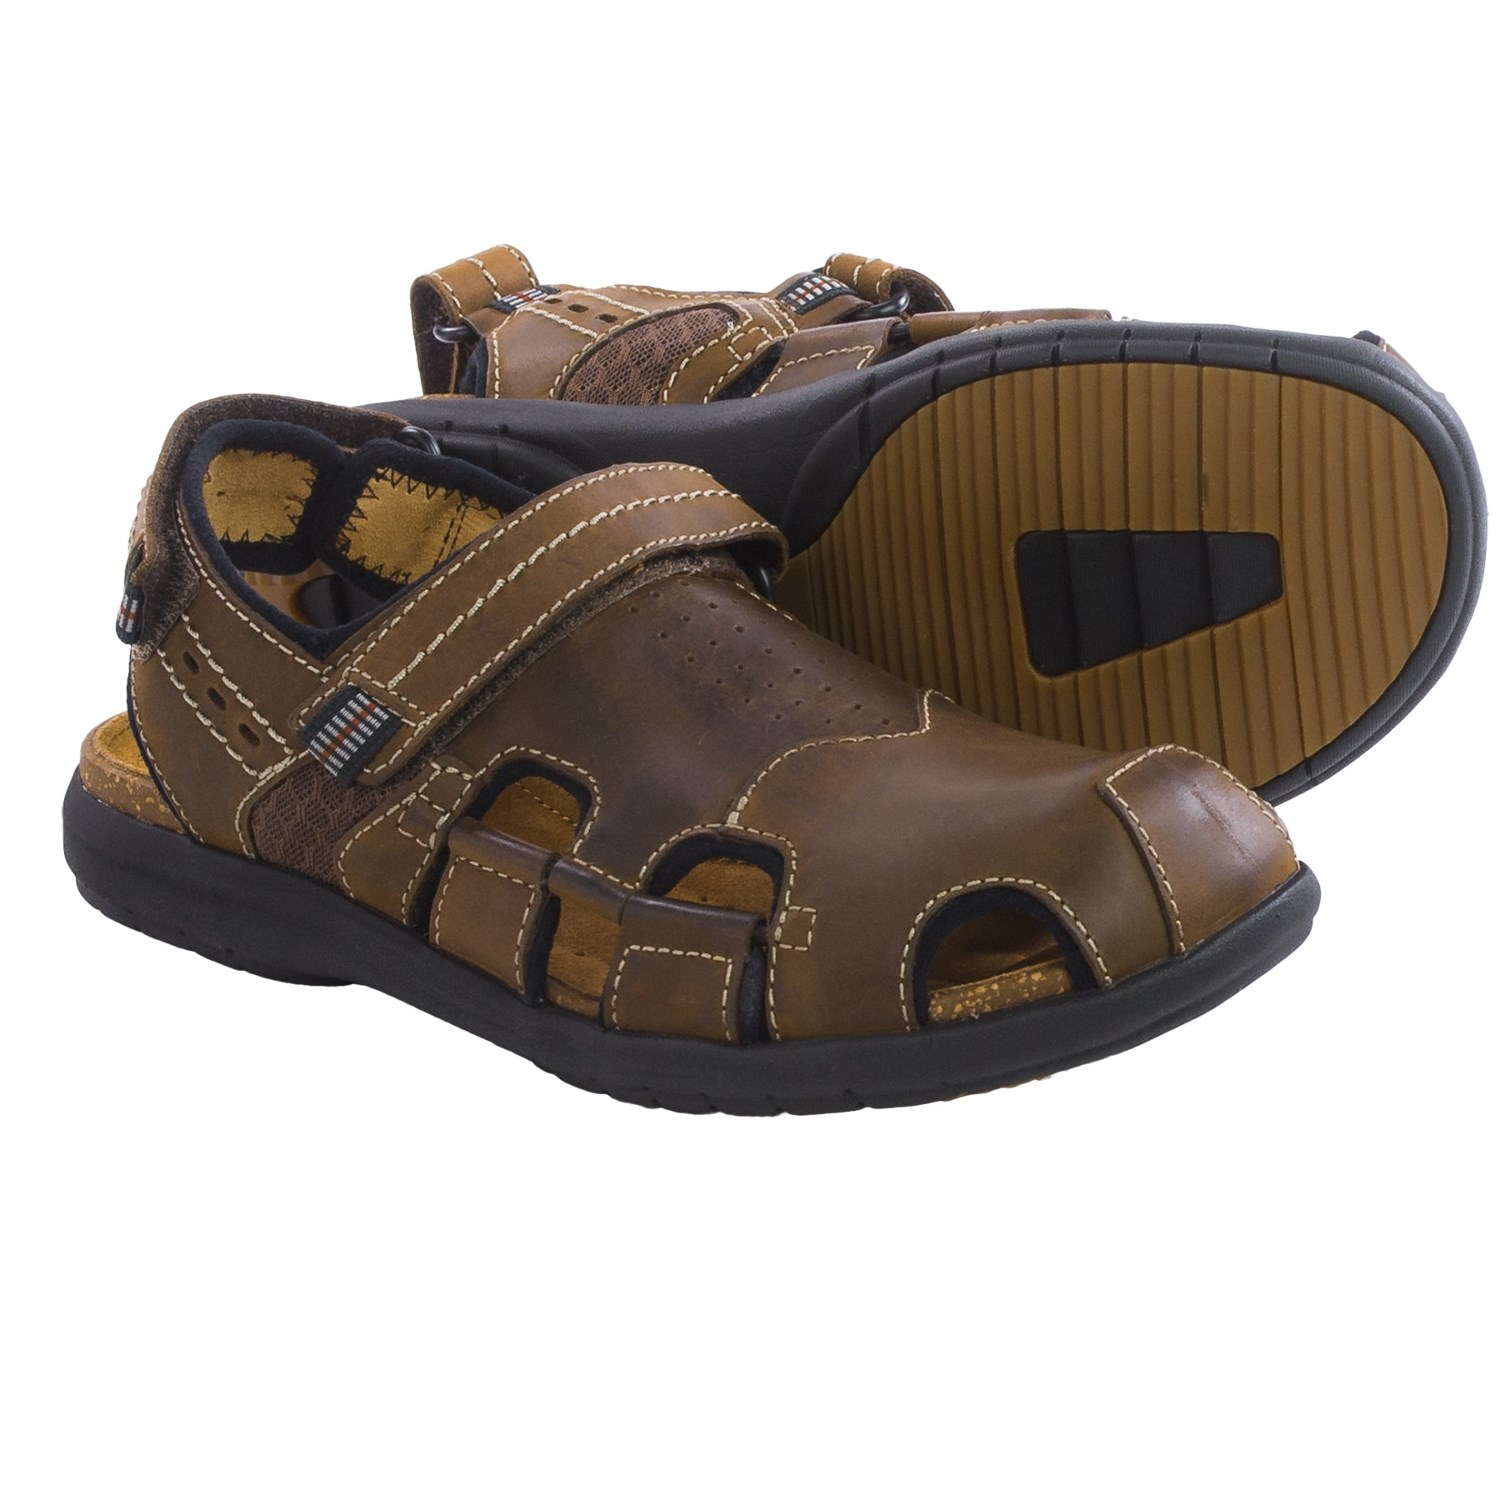 09780638a12 Clarks Un.Bryman Bay Leather Sandals (For Men) 122PU 65 on PopScreen